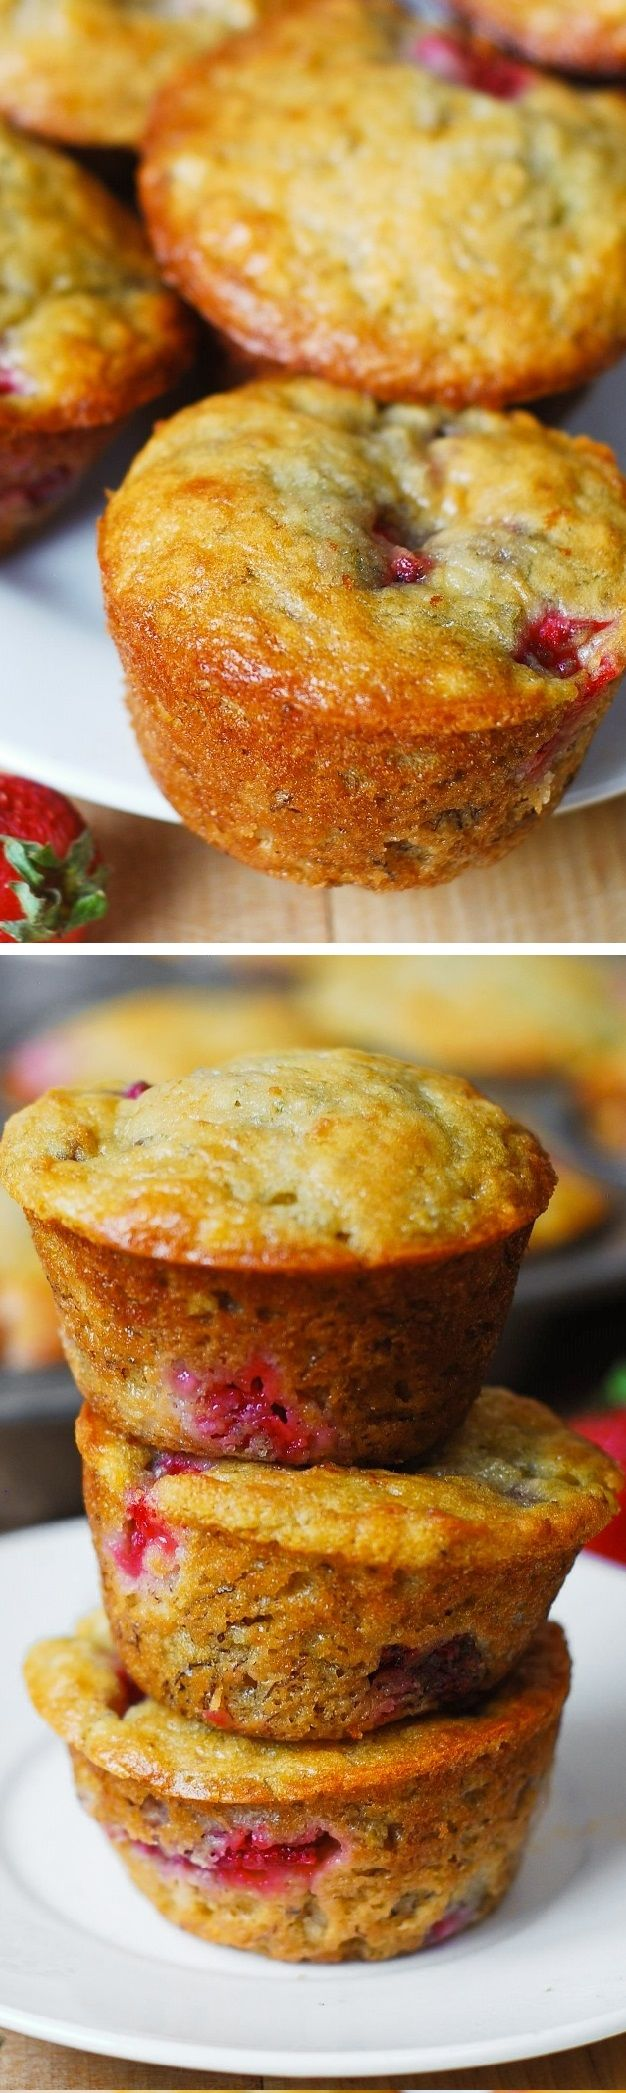 Strawberry banana bread muffins. Only 1/3 cup butter (and 1/3 cup Greek yogurt) used to make 12 regular size muffins. Greek yogurt creates a rich texture and reduces the amount of saturated fats used! Healthier, low-fat desserts recipes